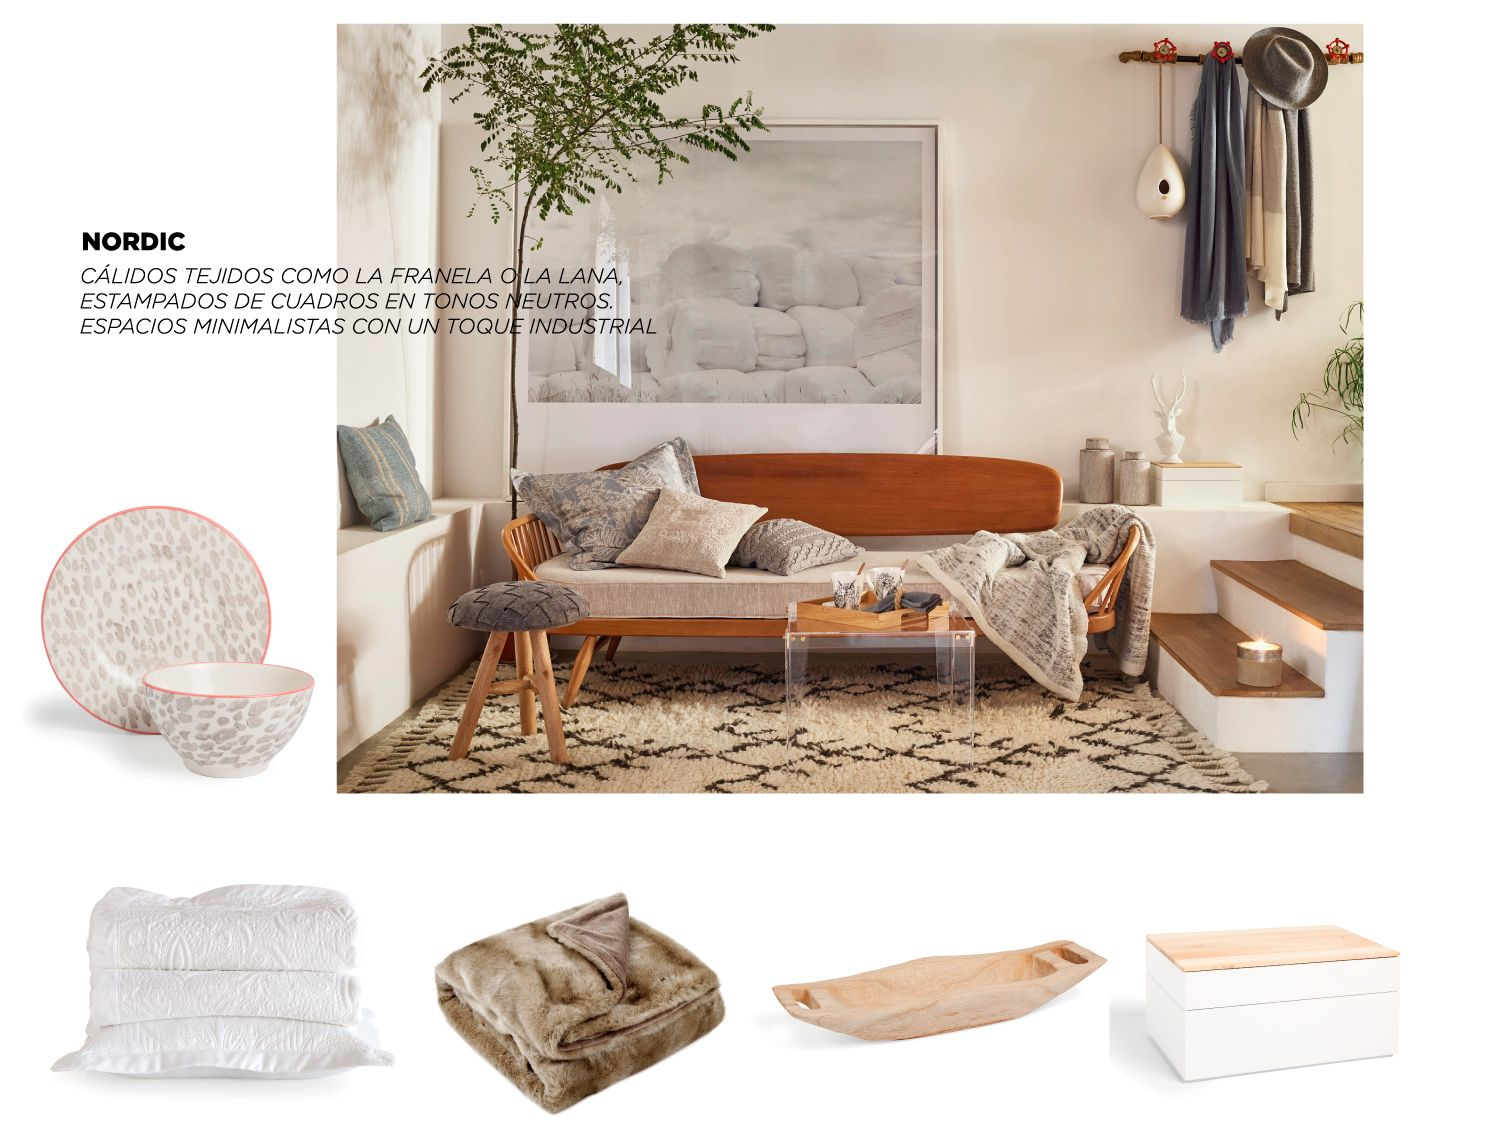 Zara home interior design - Discover The Latest Trends In Home Decor Bedding Tableware Towels Or Fragrances In The Zara Home Autumn 2017 Catalogue A Touch Of Style In Your Home